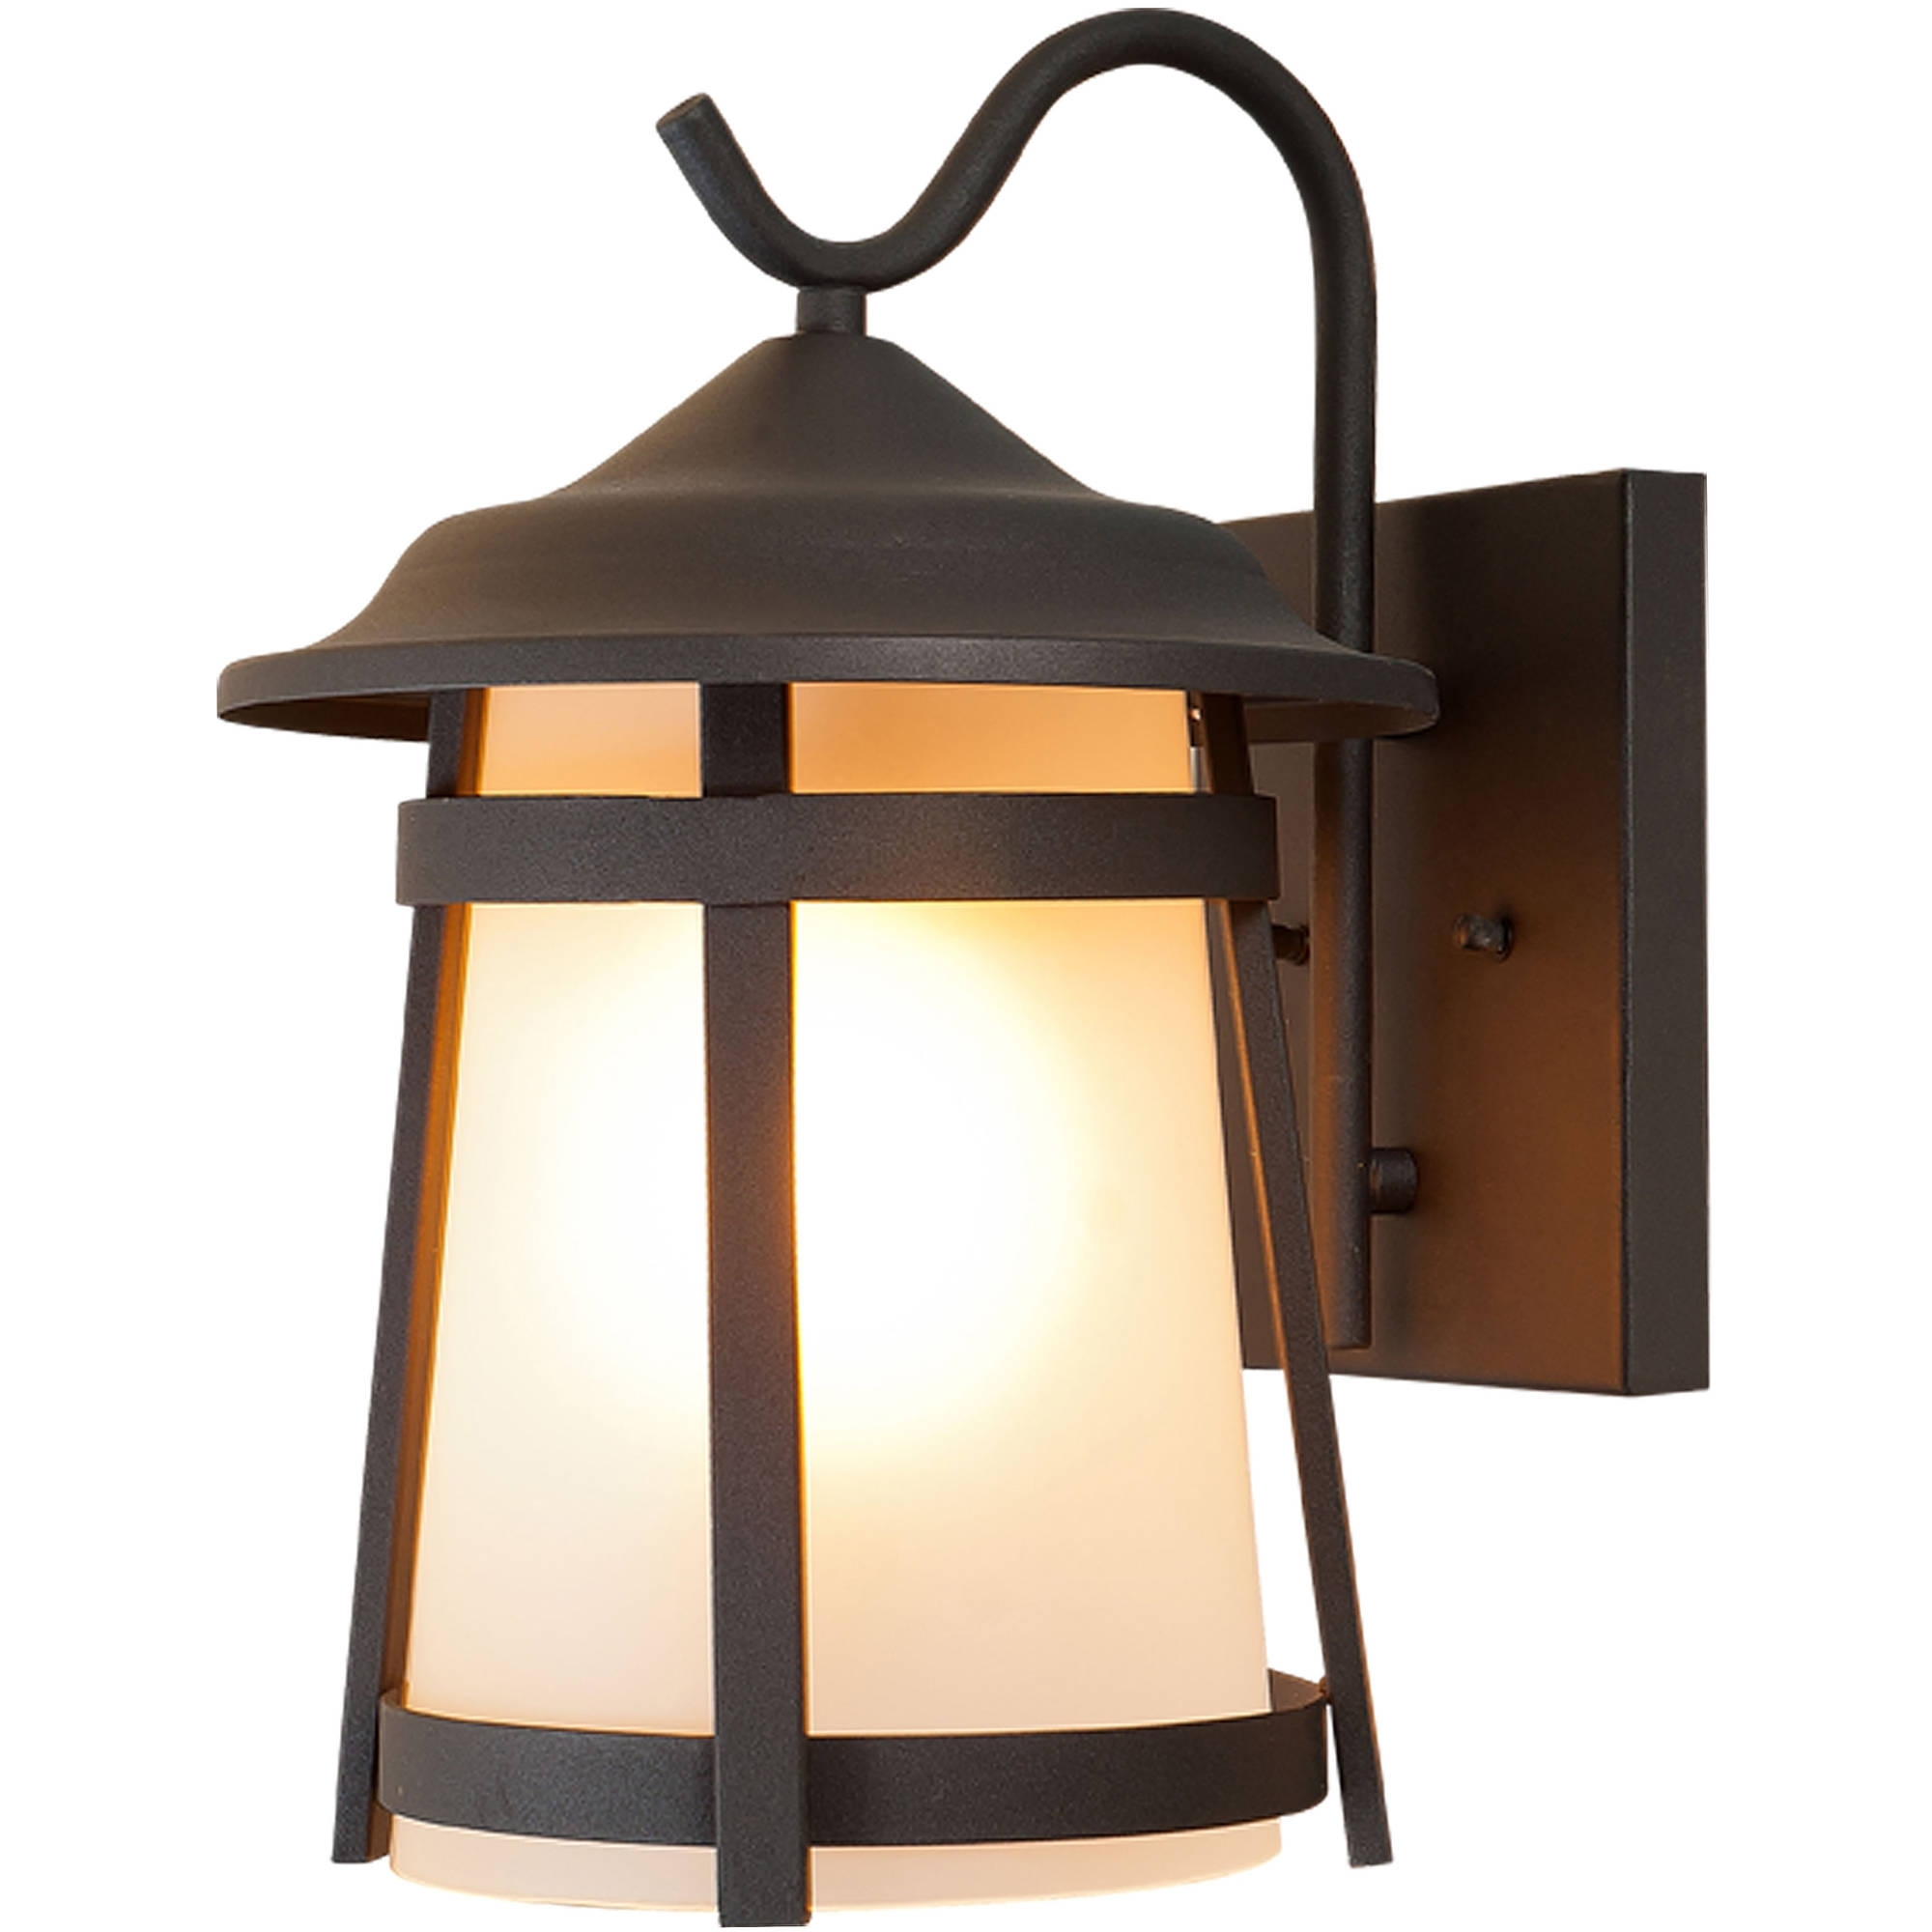 Outdoor Wall Lighting At Walmart For Widely Used Litex Industries Outdoors Wall Lighting Litex Outdoor Wall Light (View 10 of 20)